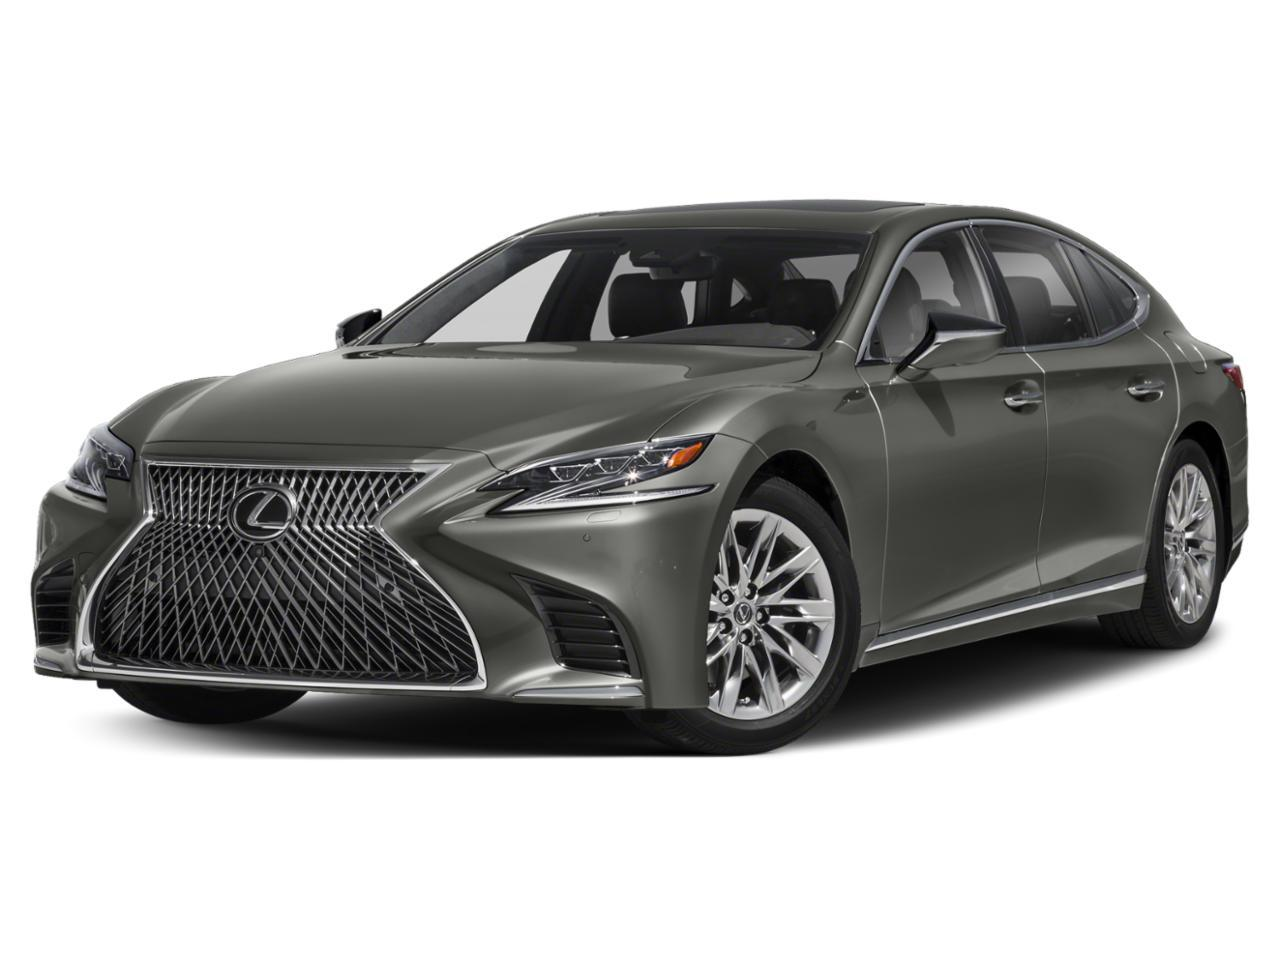 2019 Lexus LS 500 Vehicle Photo in Dallas, TX 75235